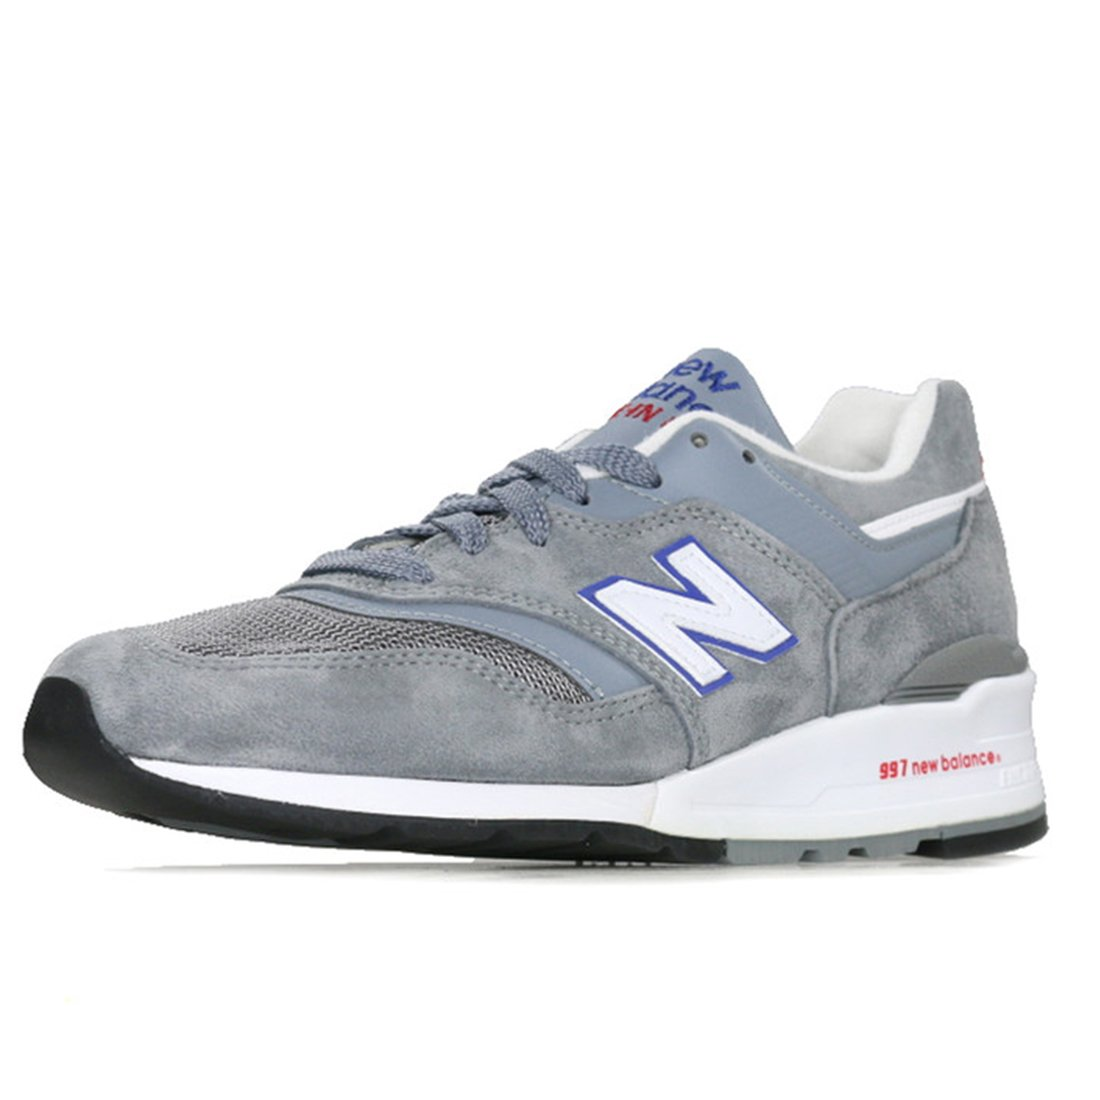 TALLA 7,5. New Balance M997, CNR blue-red